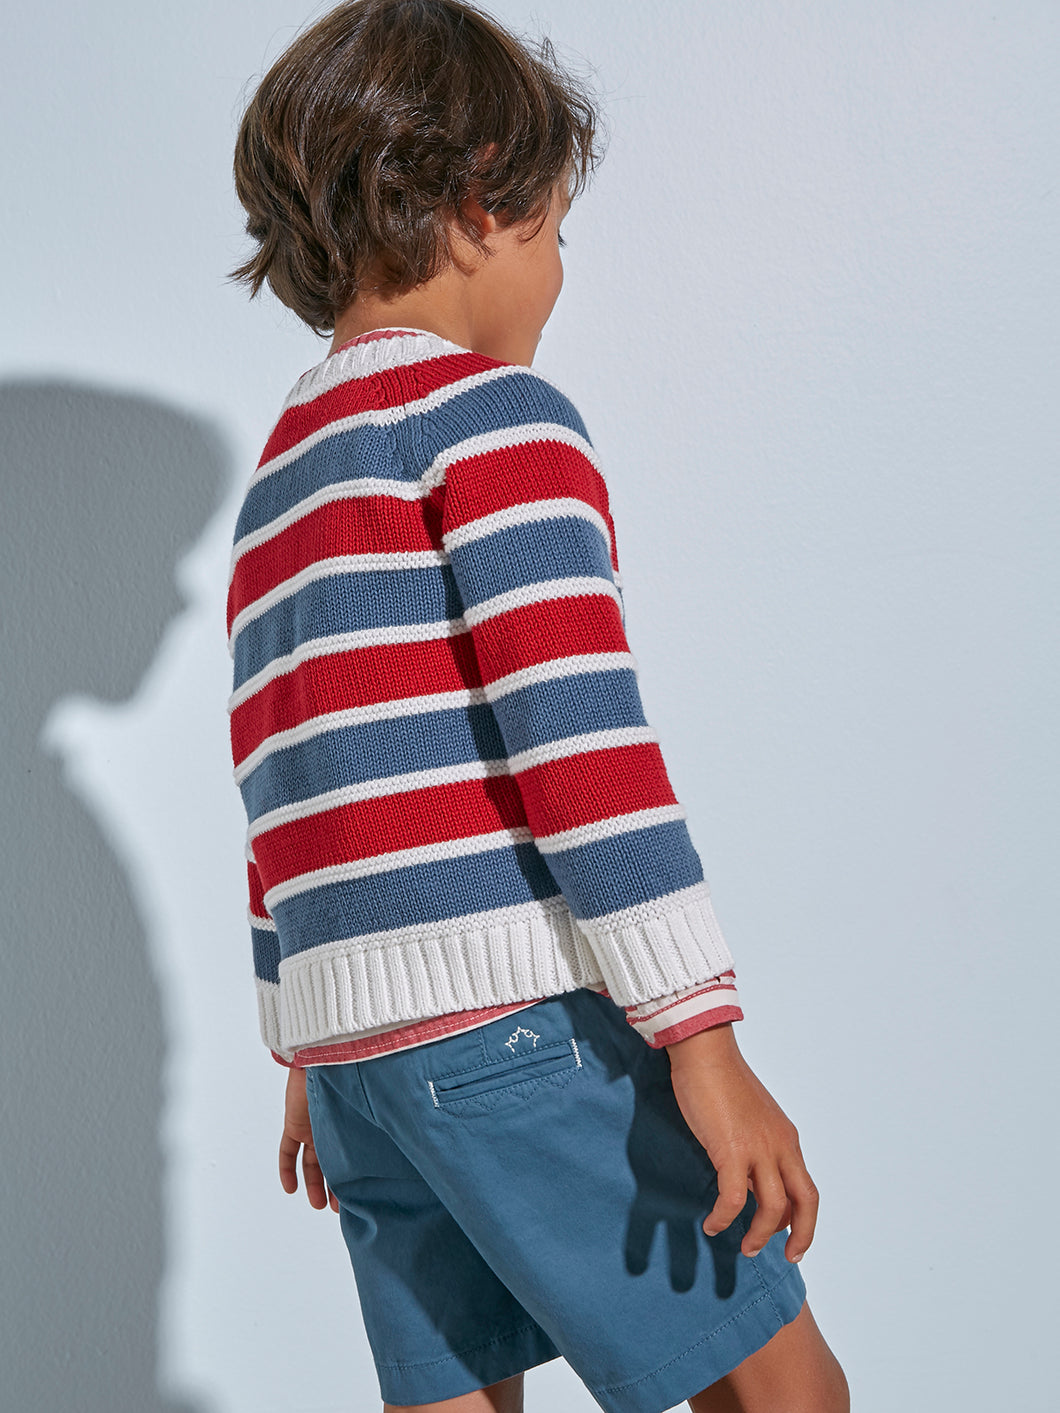 BOYS RED AND GRAY KNITTED JUMPER